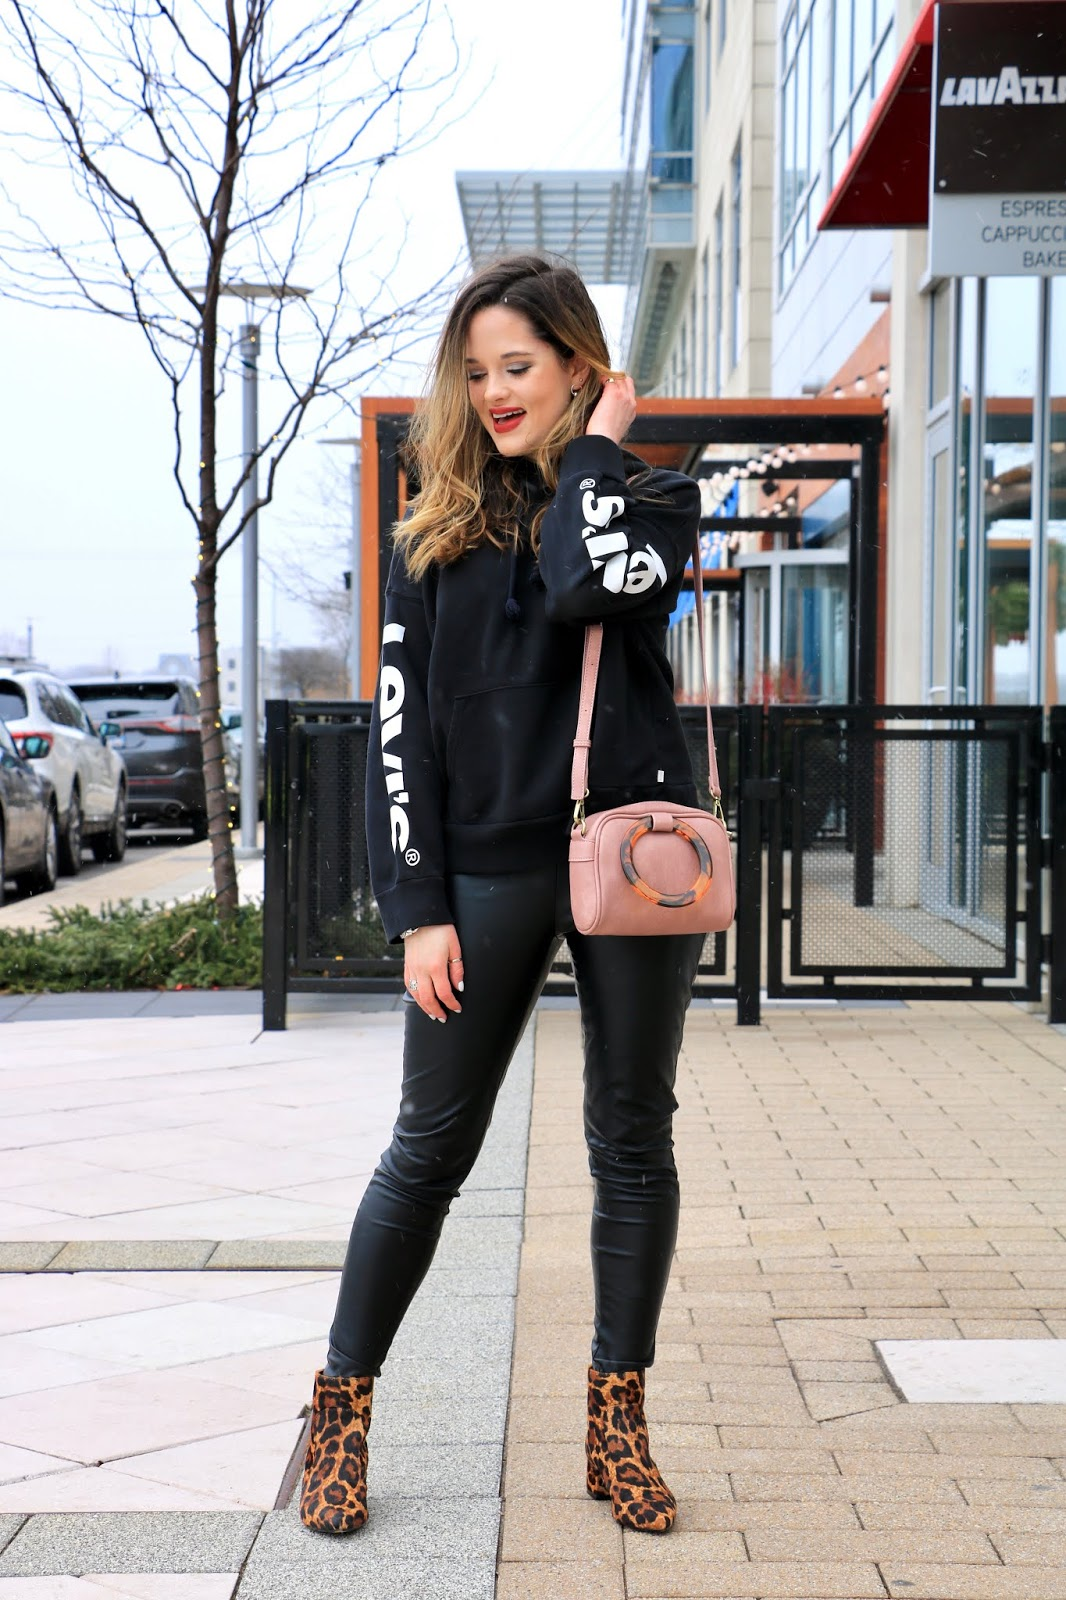 Nyc fashion blogger Kathleen Harper's cute sweatshirt outfit idea